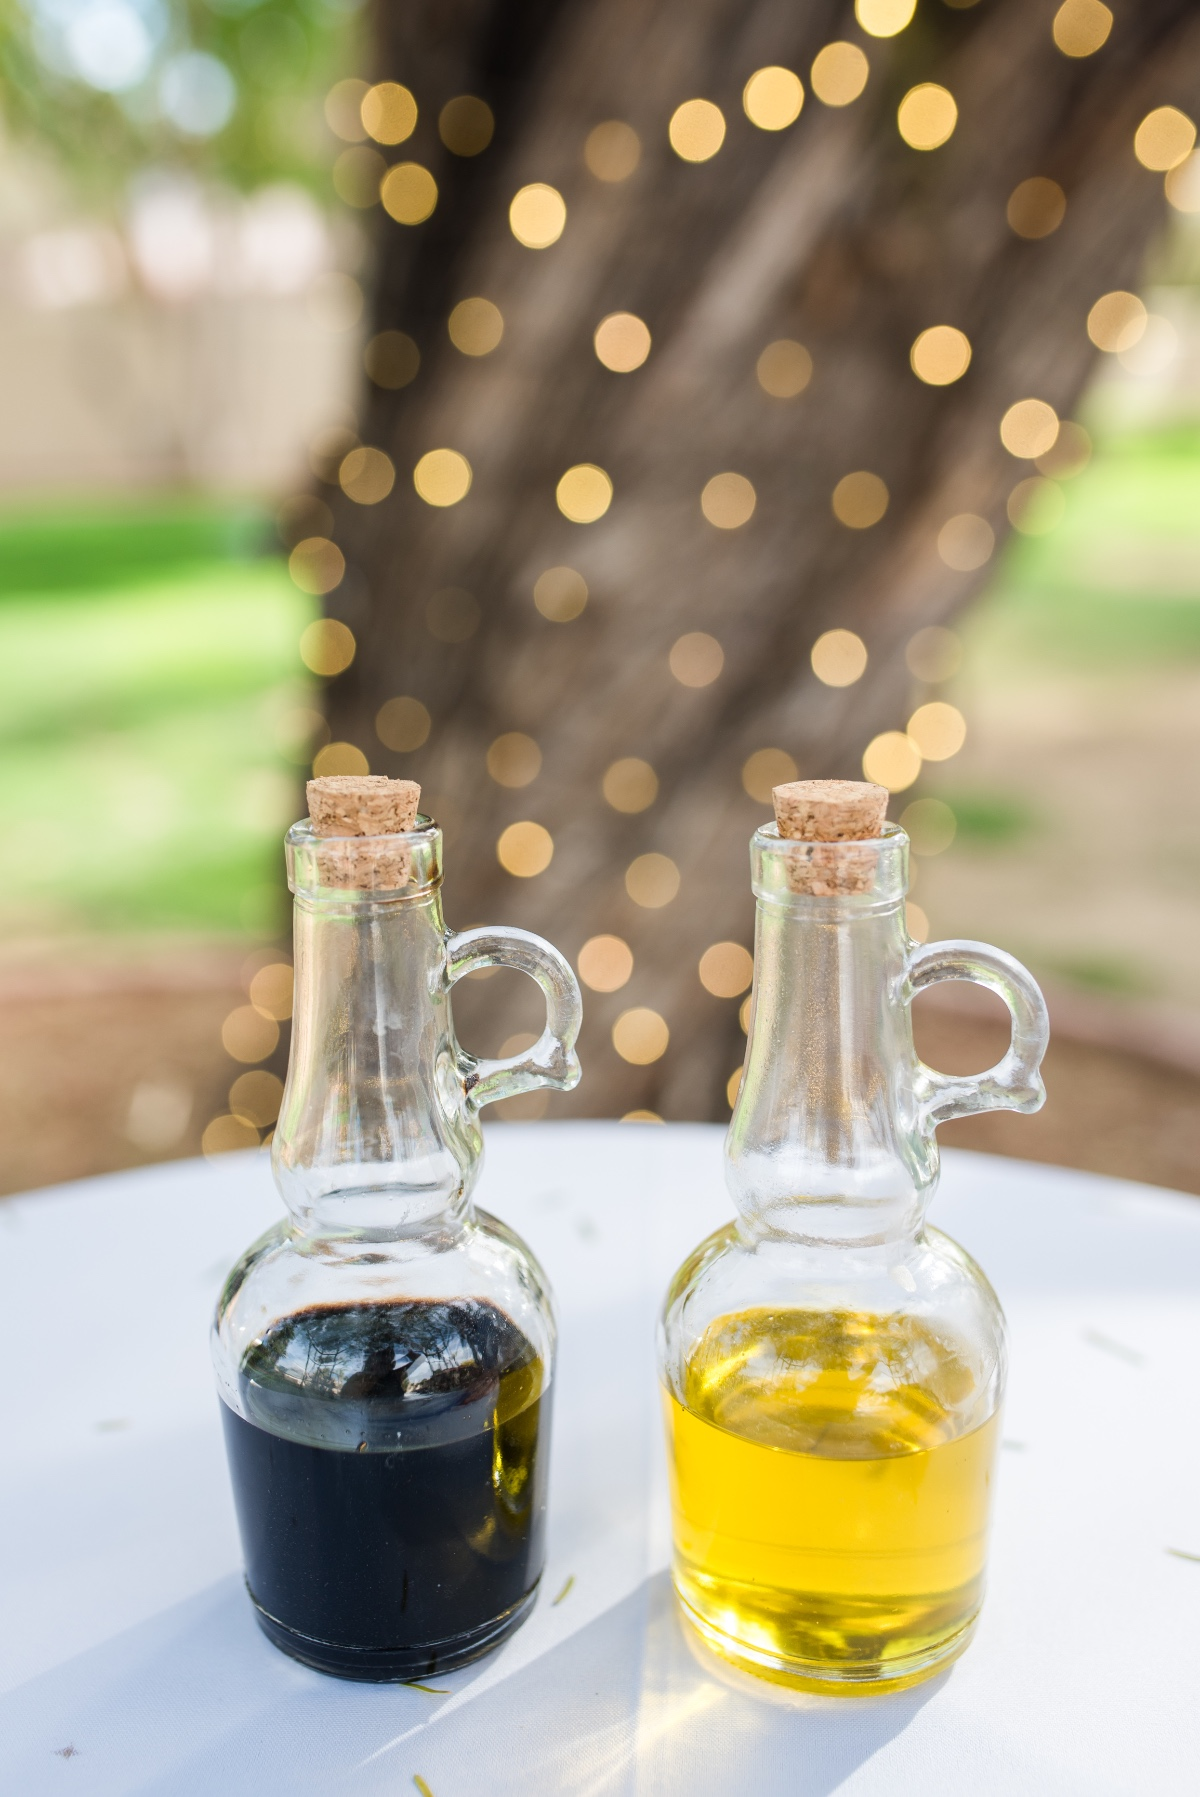 Vinegar and oil ceremony